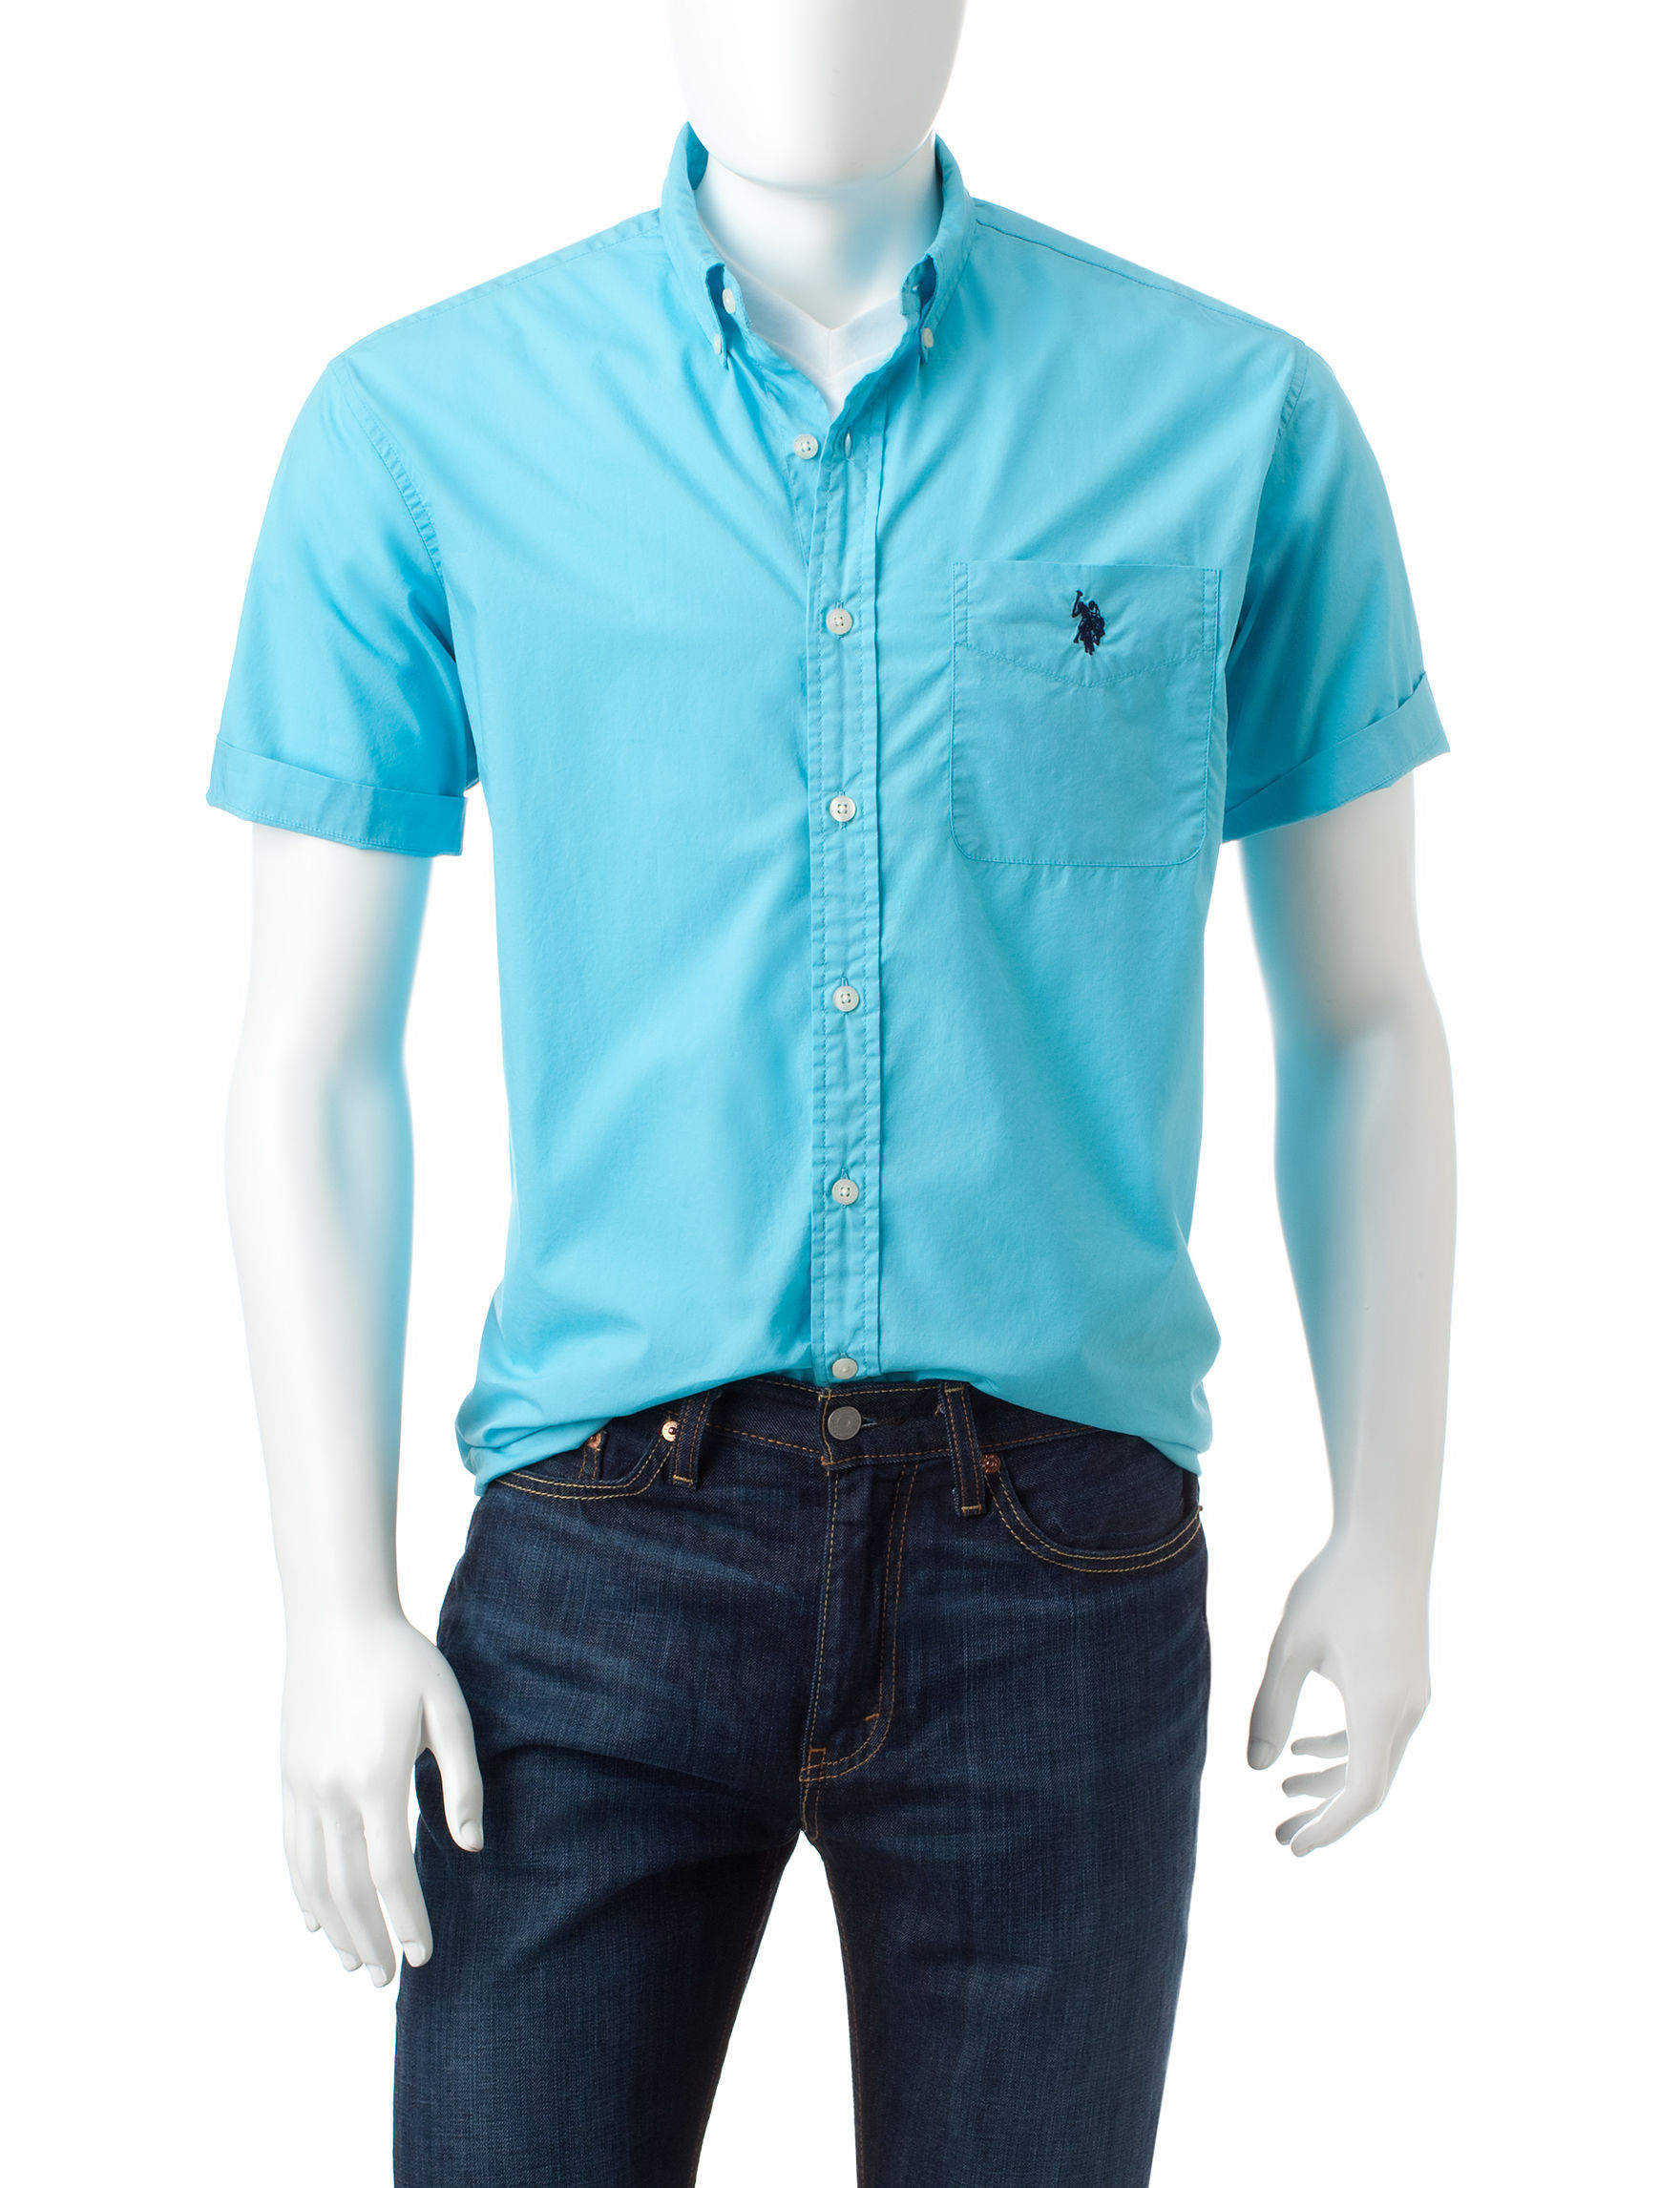 U.S. Polo Assn. Blue Casual Button Down Shirts